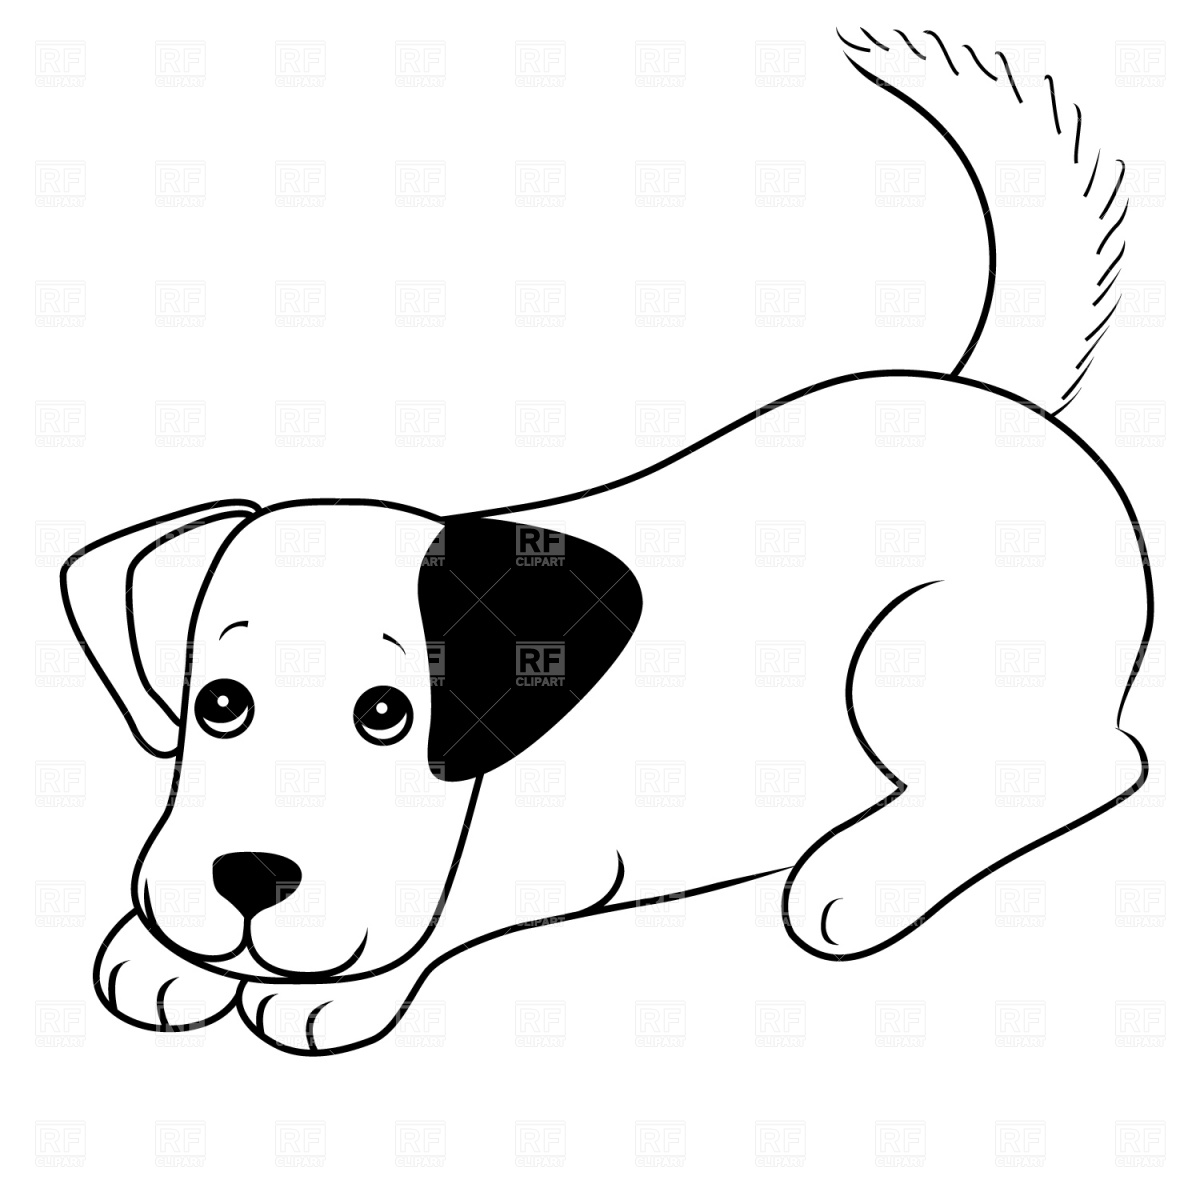 Clipart kids and pets playing black and white clipart royalty free download Dog Pictures Free | Free download best Dog Pictures Free on ... clipart royalty free download